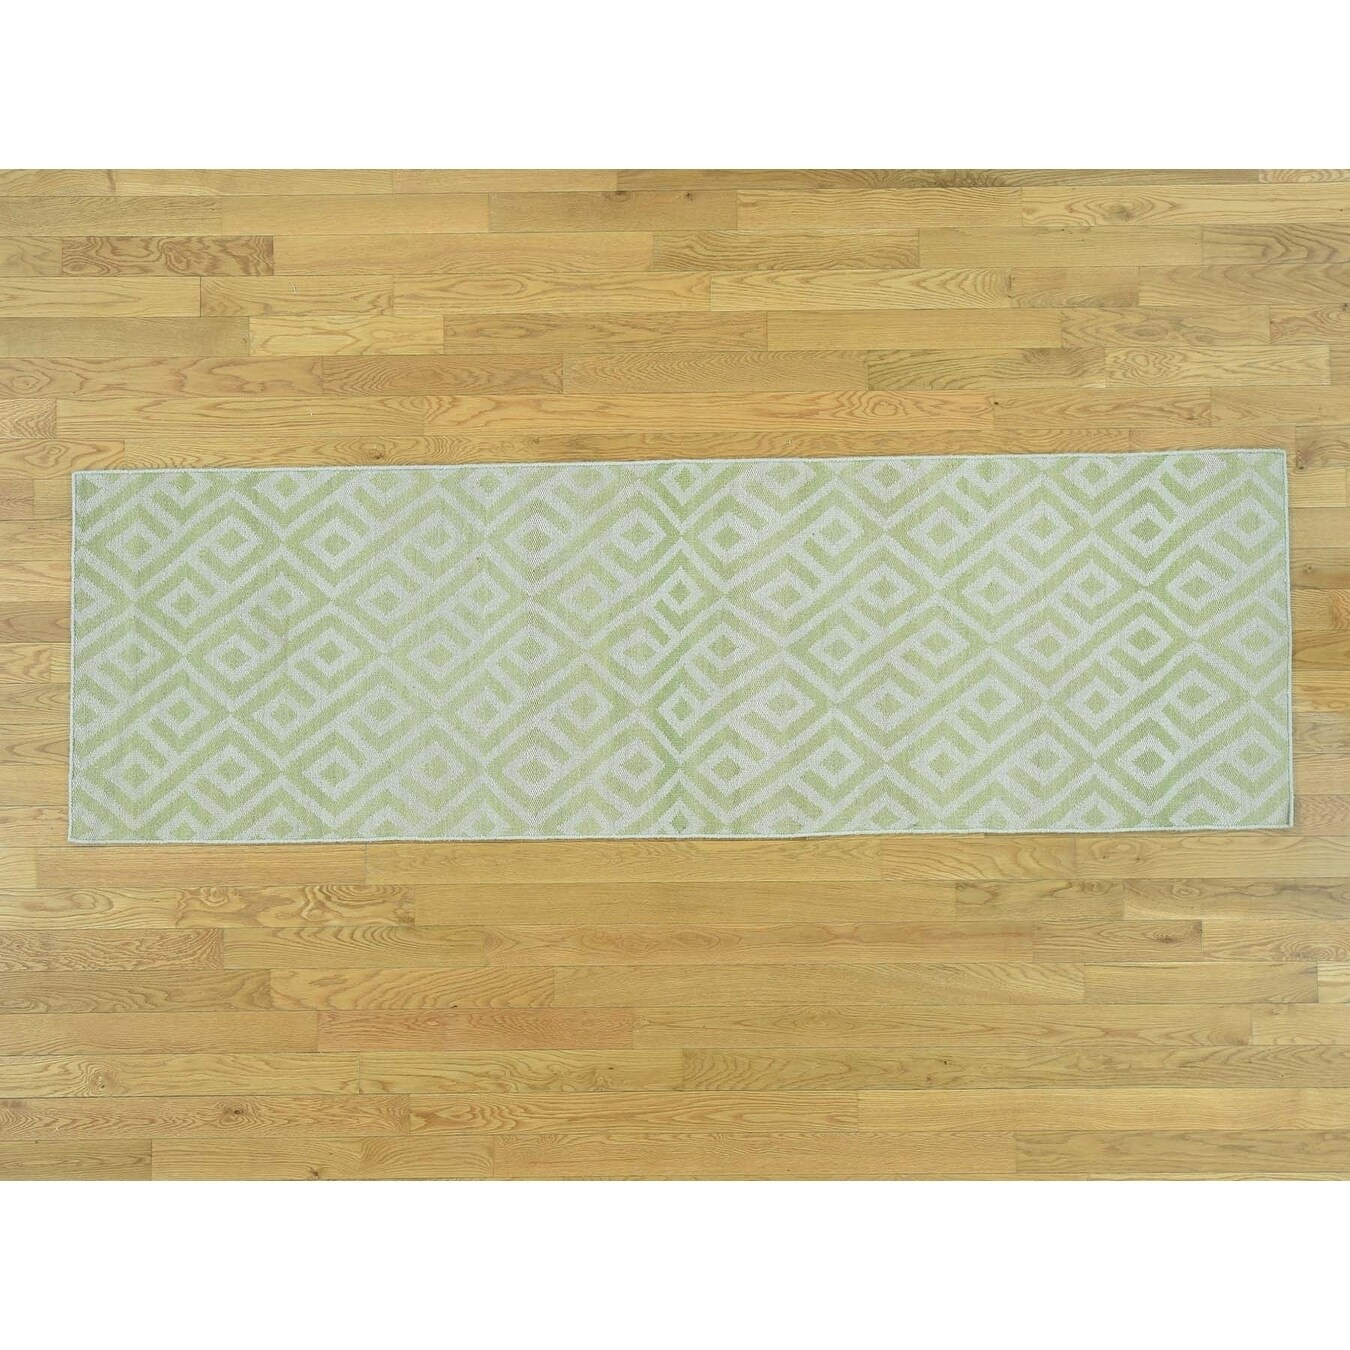 Hand Knotted Green Flat Weave with Wool Oriental Rug - 26 x 81